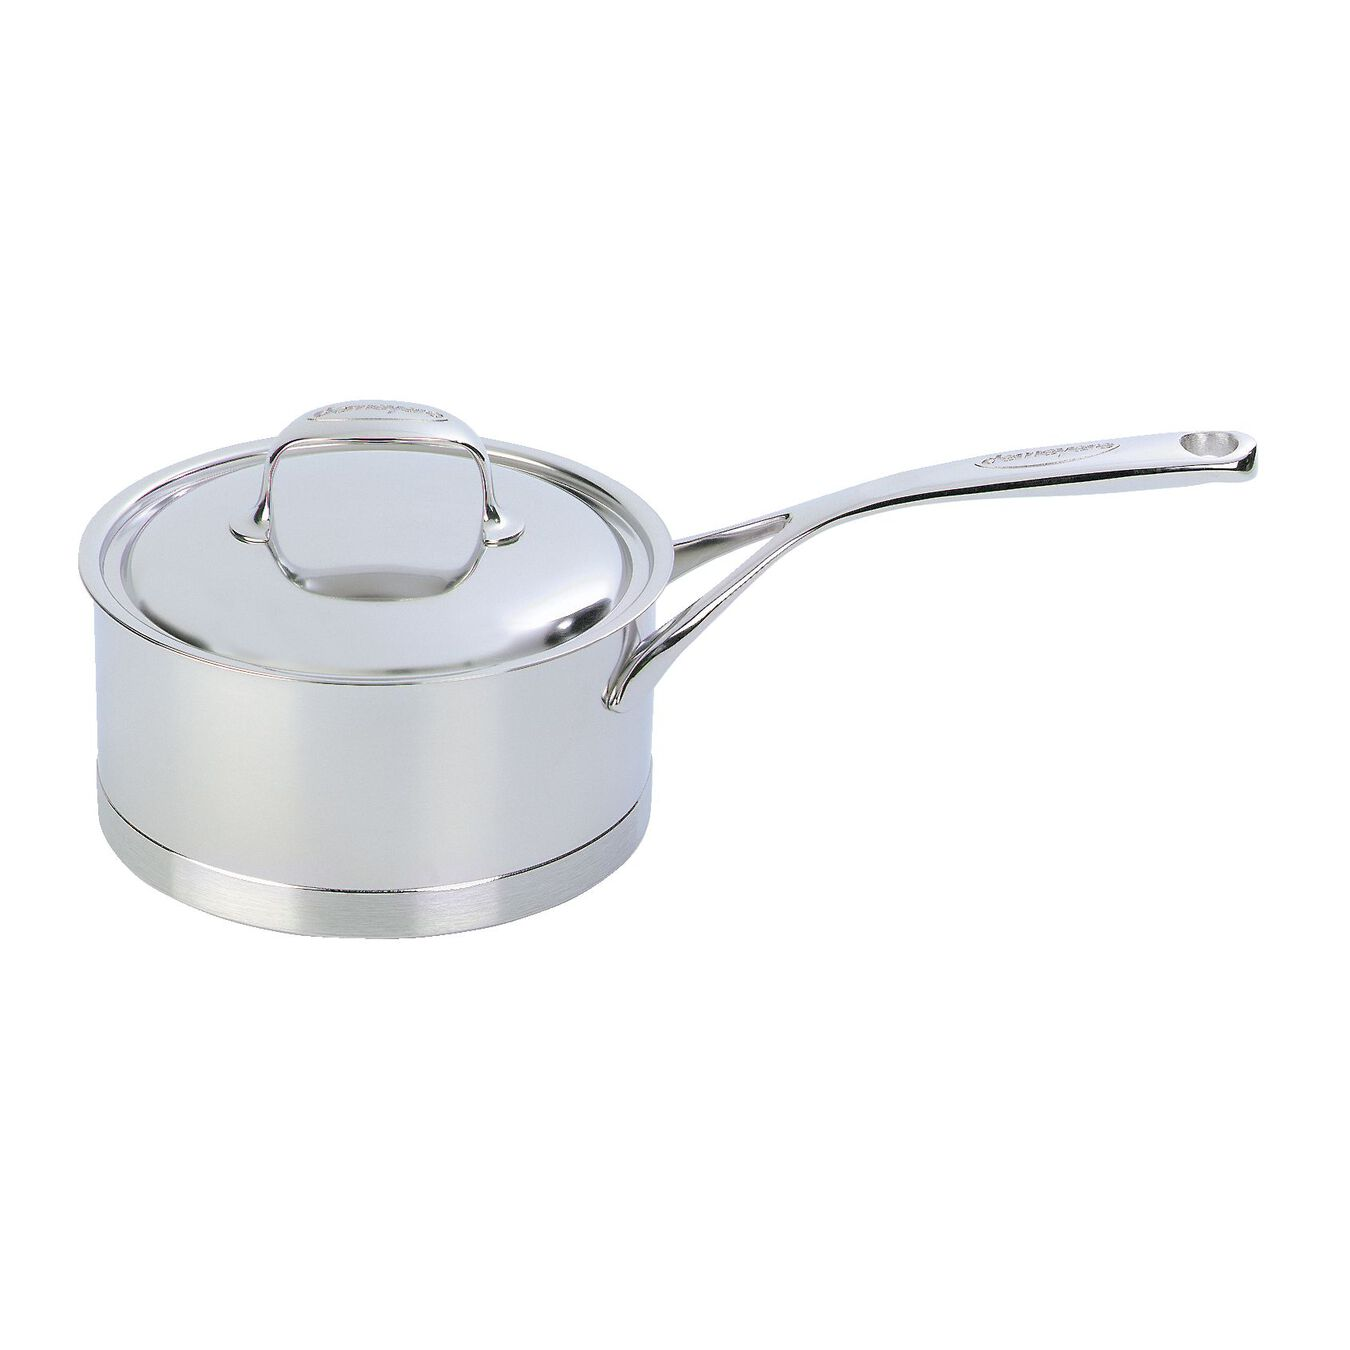 3.2-qt Stainless Steel Saucepan,,large 1